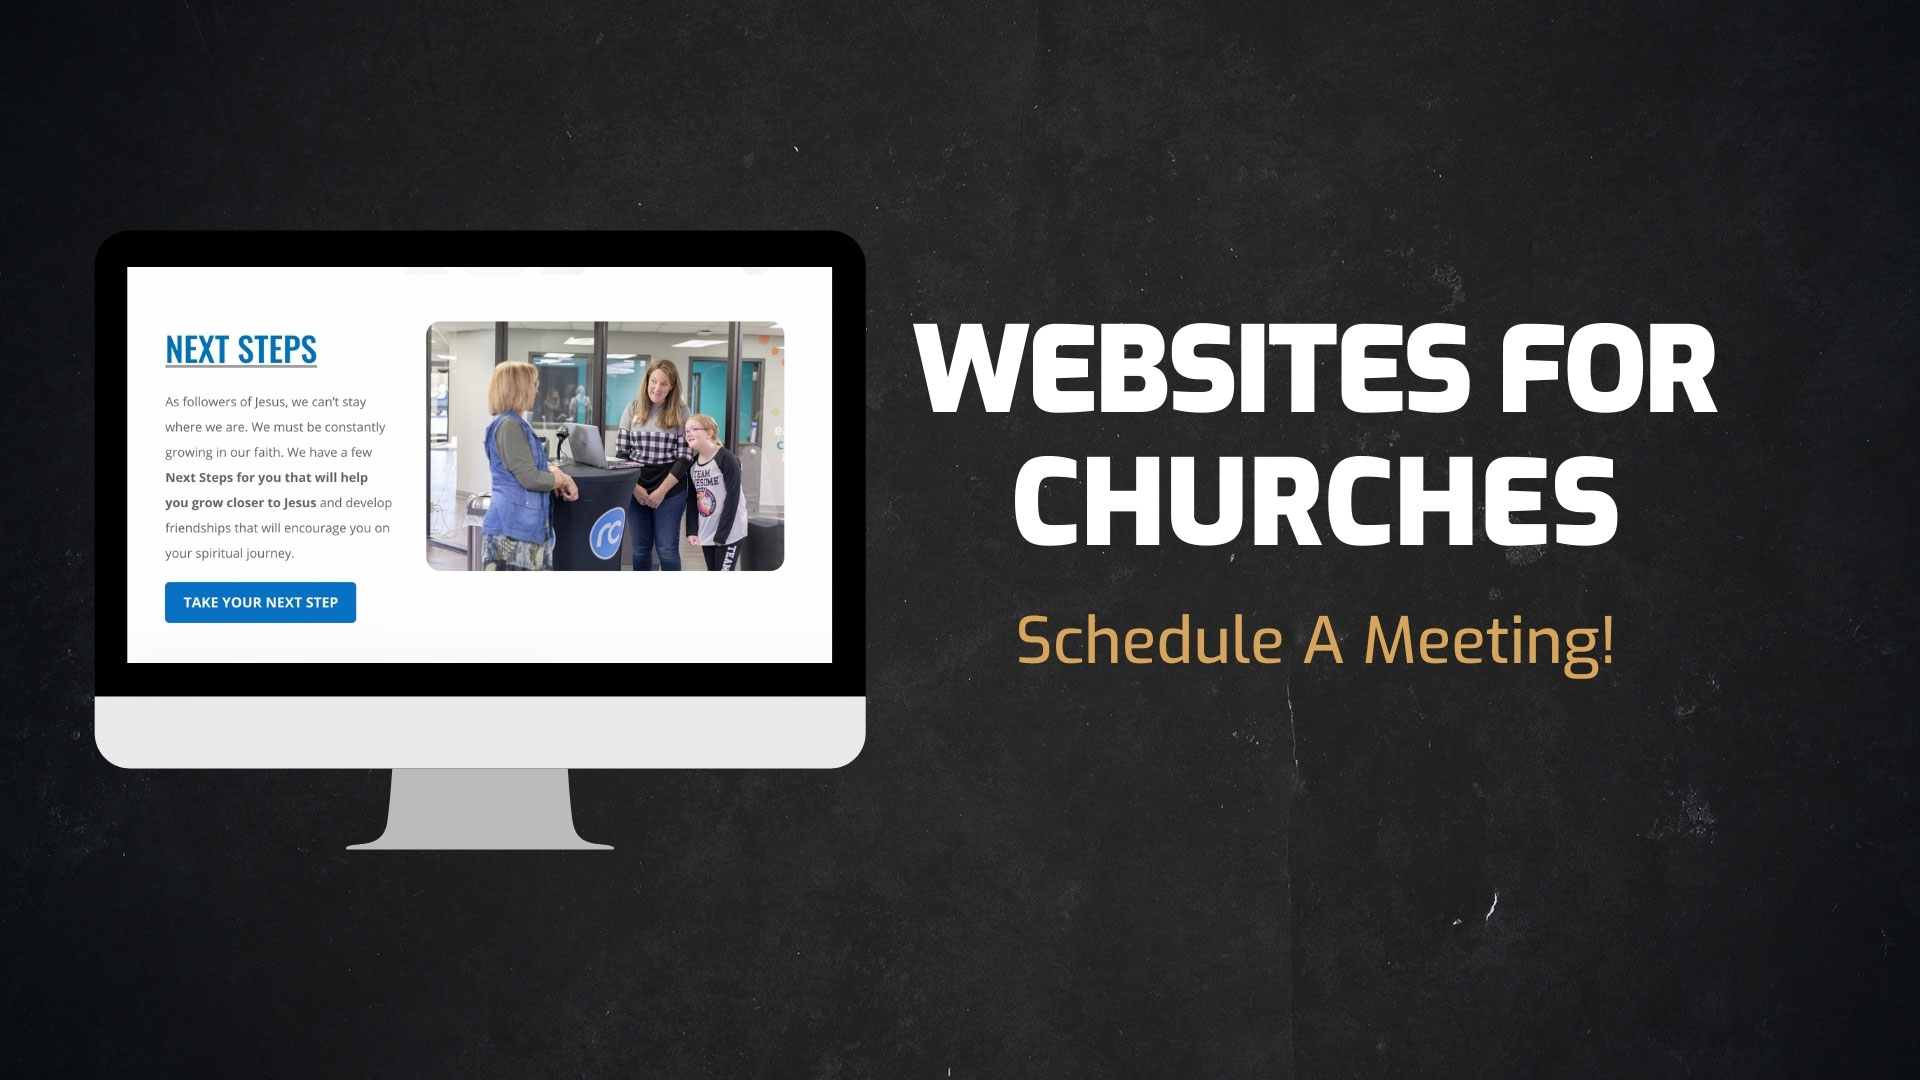 Services We Offer - Websites For Churches - Schedule A Meeting